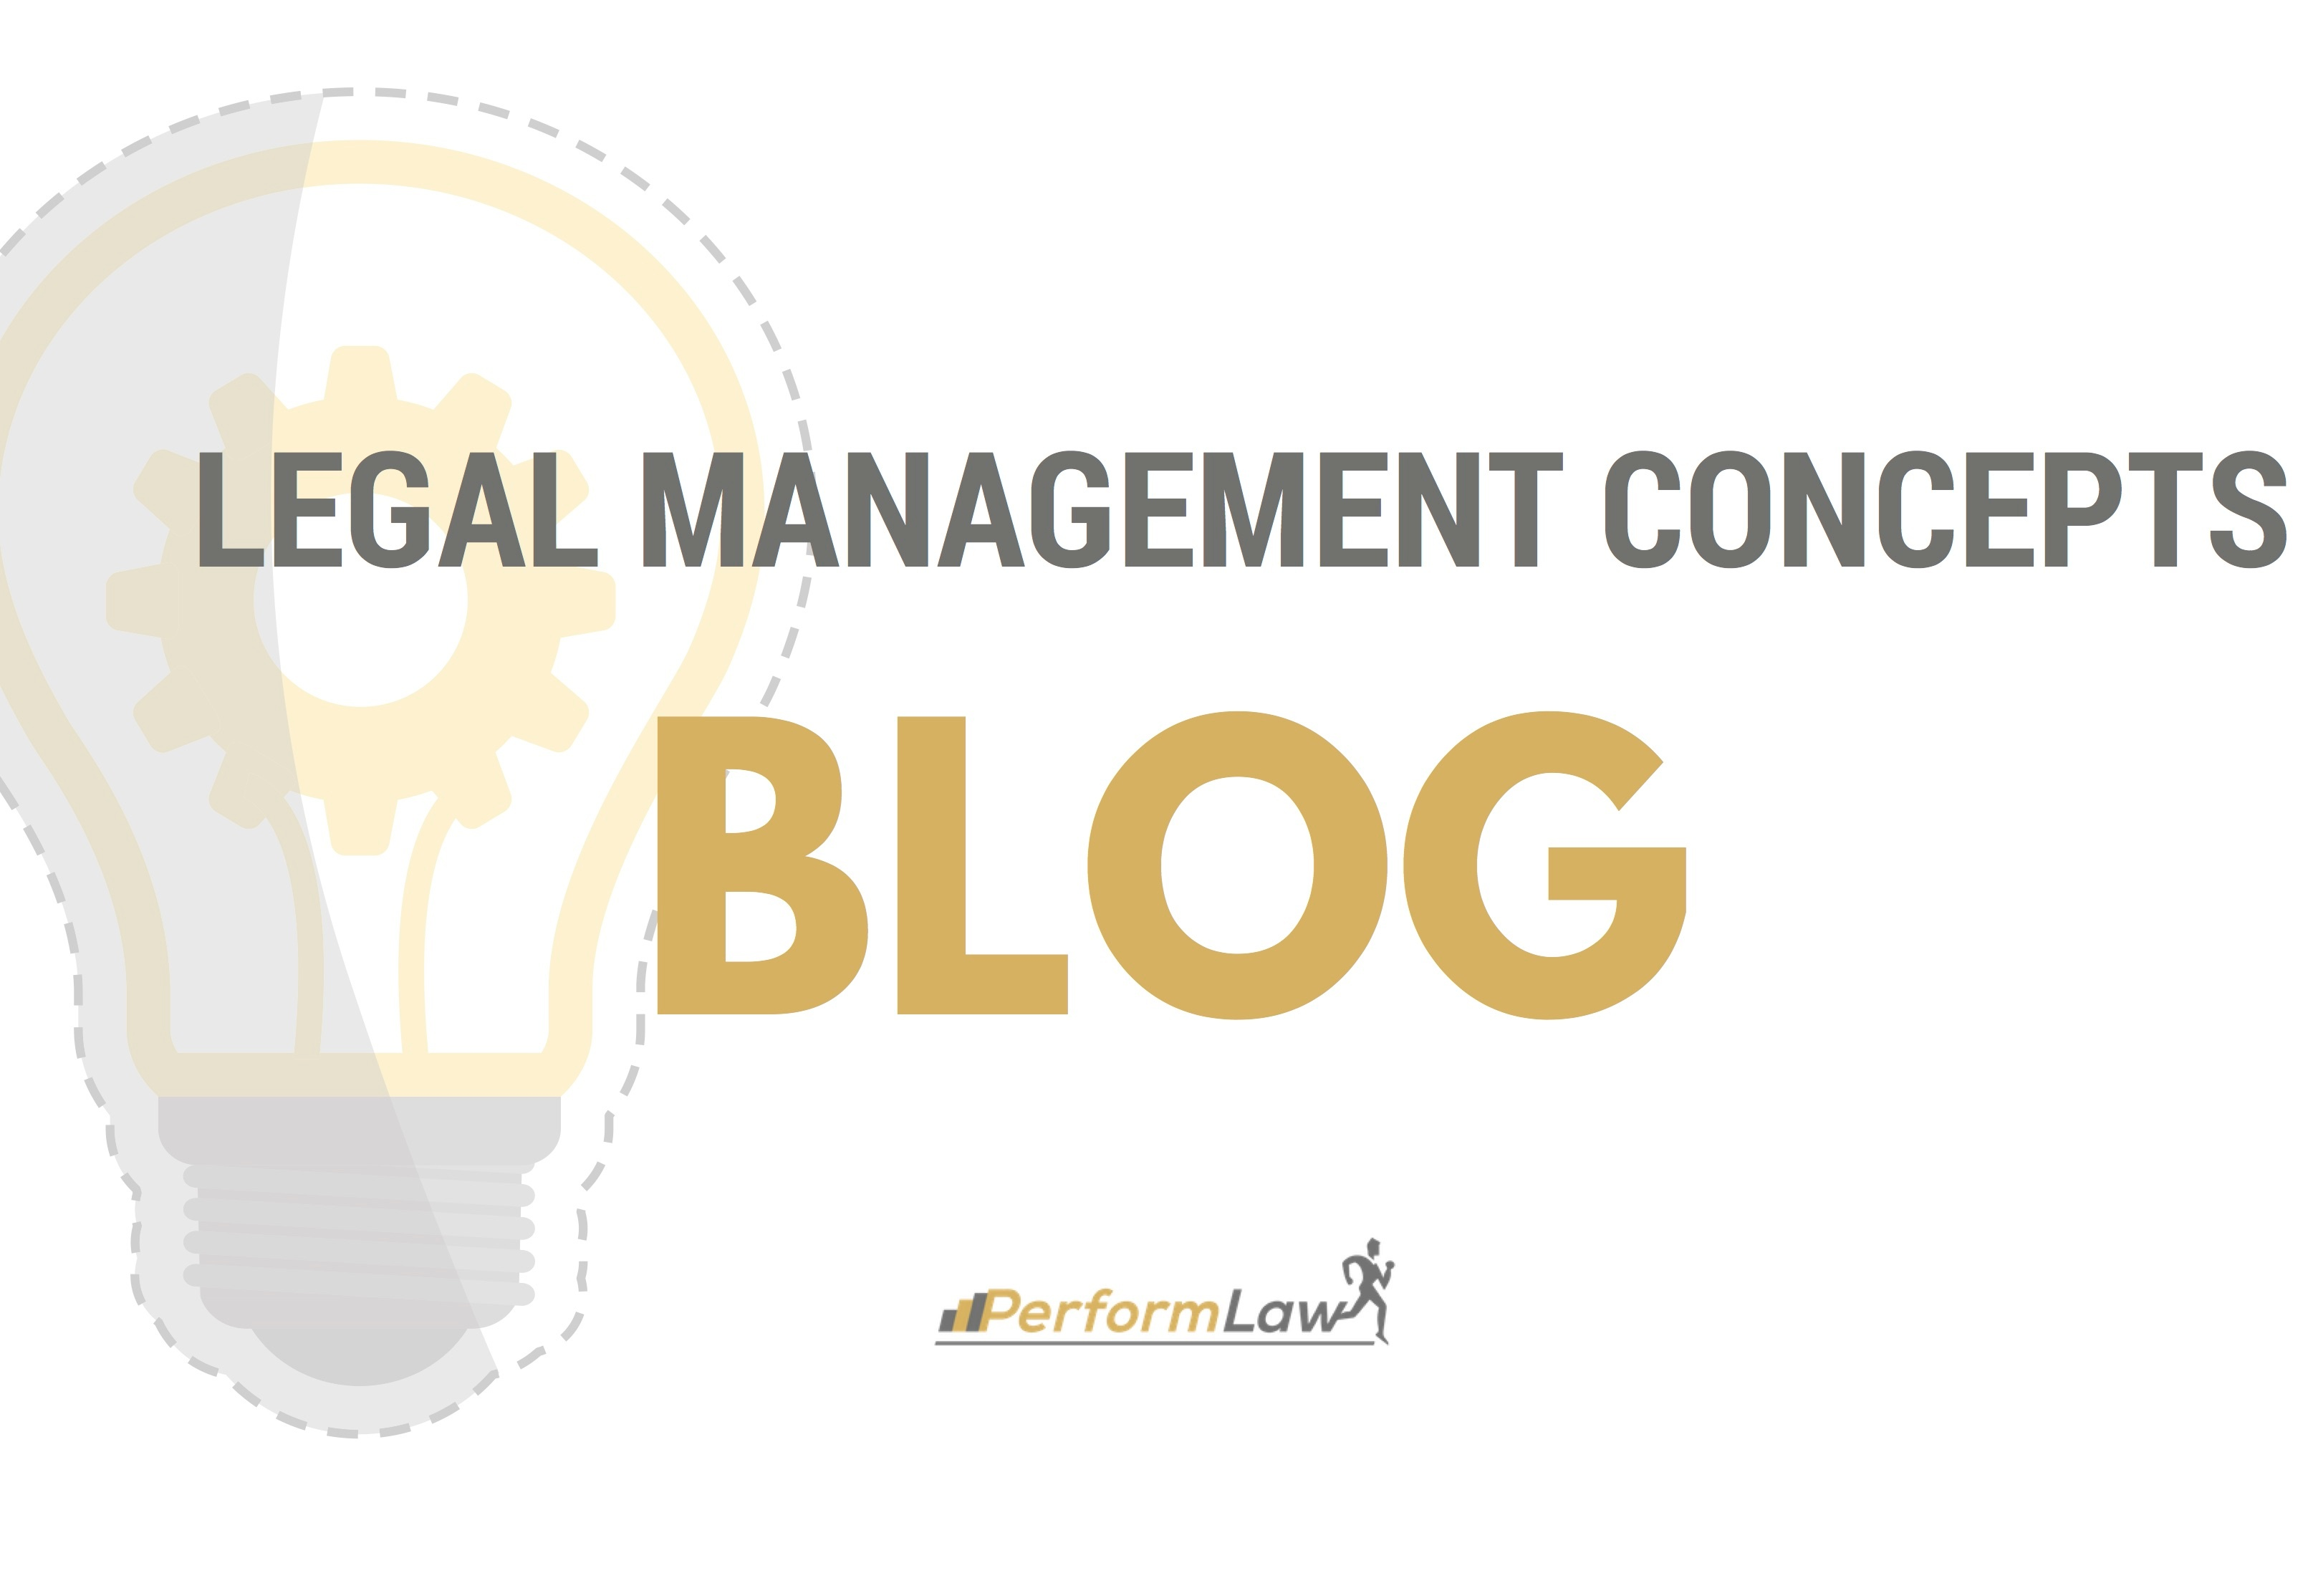 Law office management - The Law Firm Management Concepts Blog Includes Conceptual Posts On Important Issues To Law Firms These Posts Will Correspond To The Posts Found On Our Main